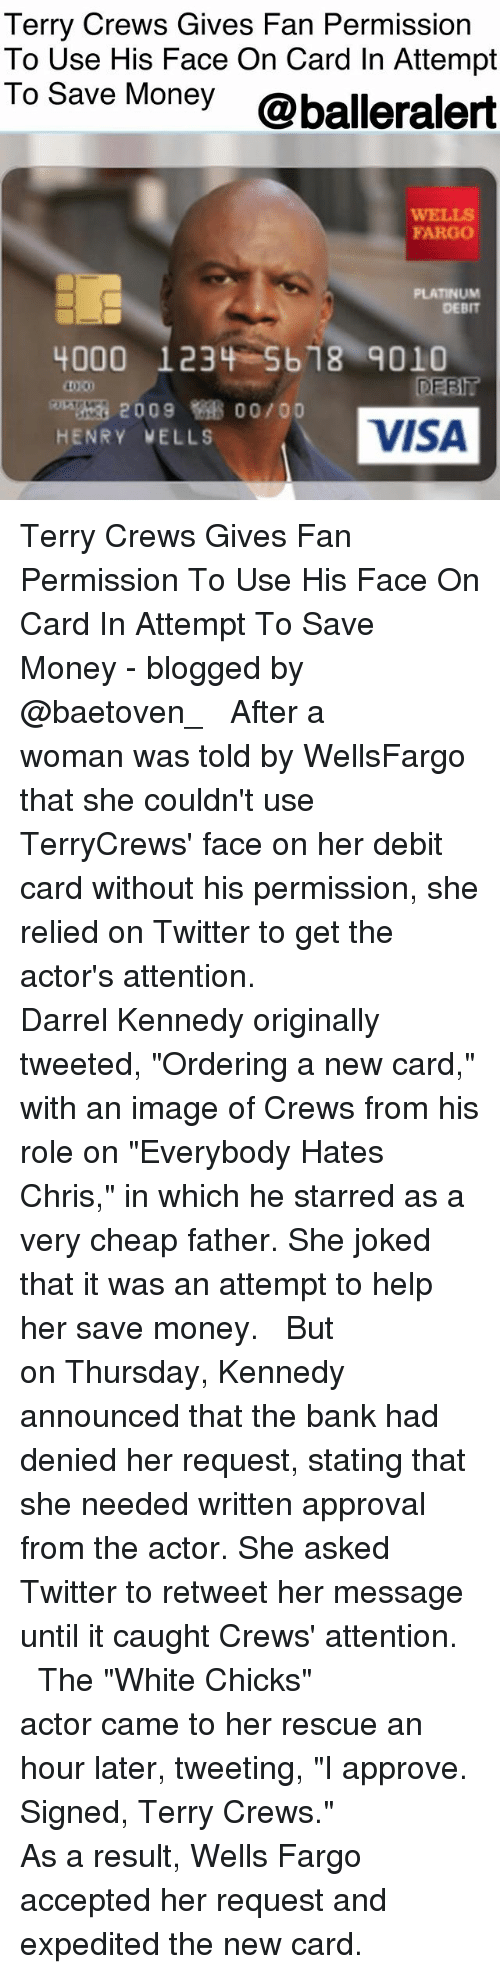 "Everybody Hates Chris, Memes, and Money: Terry Crews Gives Fan Permission  To Use His Face On Card In Attempt  To Save Money @balleralert  WELLS  FARGO  PLATINUM  DEBIT  4000 123 -5b18-9010  40 00  DEET?  2009  00/00  HENRY VELLS  VISA Terry Crews Gives Fan Permission To Use His Face On Card In Attempt To Save Money - blogged by @baetoven_ ⠀⠀⠀⠀⠀⠀⠀ ⠀⠀⠀⠀⠀⠀⠀ After a woman was told by WellsFargo that she couldn't use TerryCrews' face on her debit card without his permission, she relied on Twitter to get the actor's attention. ⠀⠀⠀⠀⠀⠀⠀ ⠀⠀⠀⠀⠀⠀⠀ Darrel Kennedy originally tweeted, ""Ordering a new card,"" with an image of Crews from his role on ""Everybody Hates Chris,"" in which he starred as a very cheap father. She joked that it was an attempt to help her save money. ⠀⠀⠀⠀⠀⠀⠀ ⠀⠀⠀⠀⠀⠀⠀ But on Thursday, Kennedy announced that the bank had denied her request, stating that she needed written approval from the actor. She asked Twitter to retweet her message until it caught Crews' attention. ⠀⠀⠀⠀⠀⠀⠀ ⠀⠀⠀⠀⠀⠀⠀ The ""White Chicks"" actor came to her rescue an hour later, tweeting, ""I approve. Signed, Terry Crews."" ⠀⠀⠀⠀⠀⠀⠀ ⠀⠀⠀⠀⠀⠀⠀ As a result, Wells Fargo accepted her request and expedited the new card."